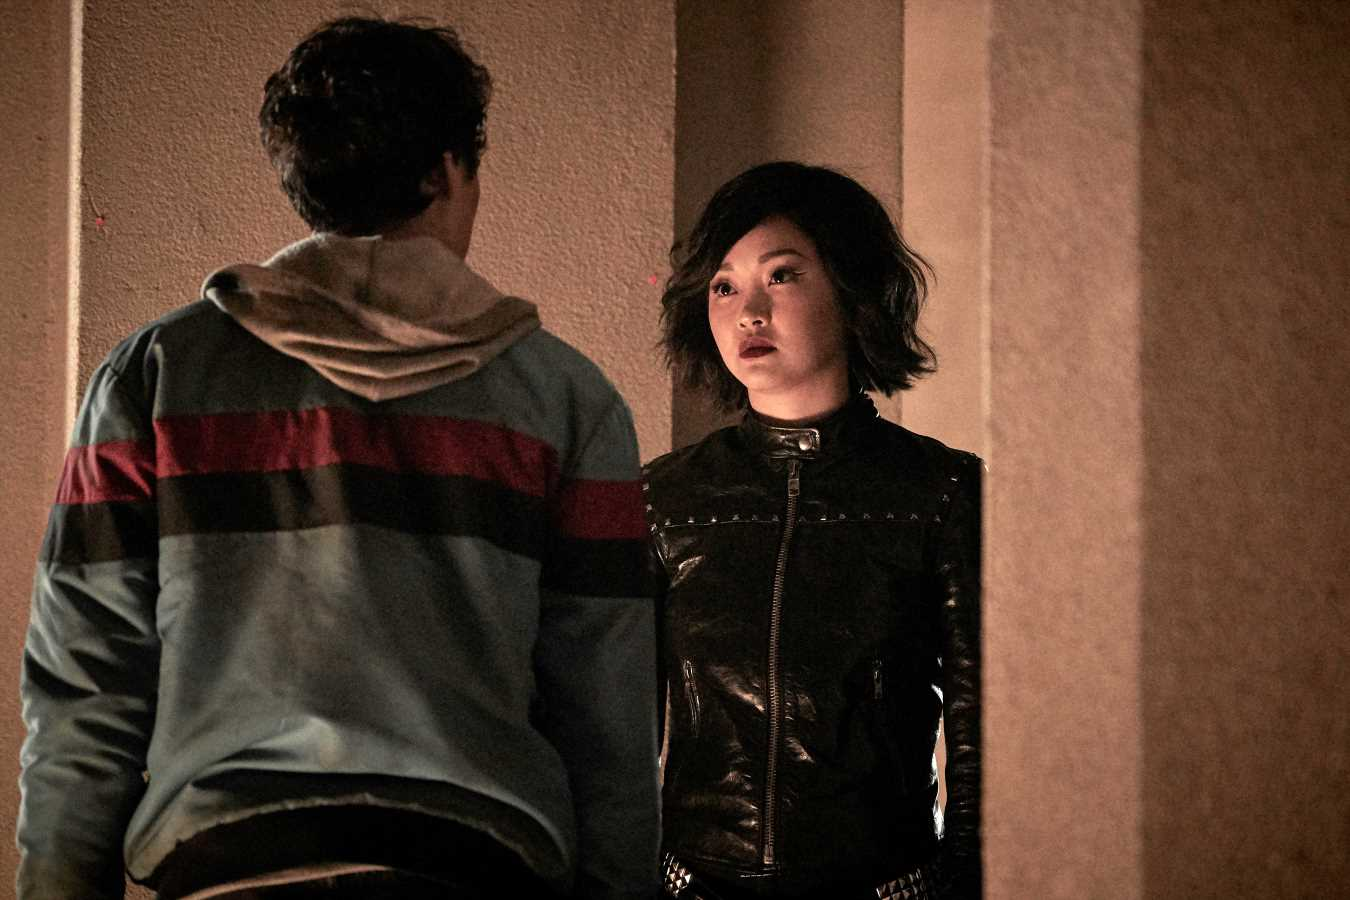 Syfy's Deadly Class premiere with Lana Condor debuts online